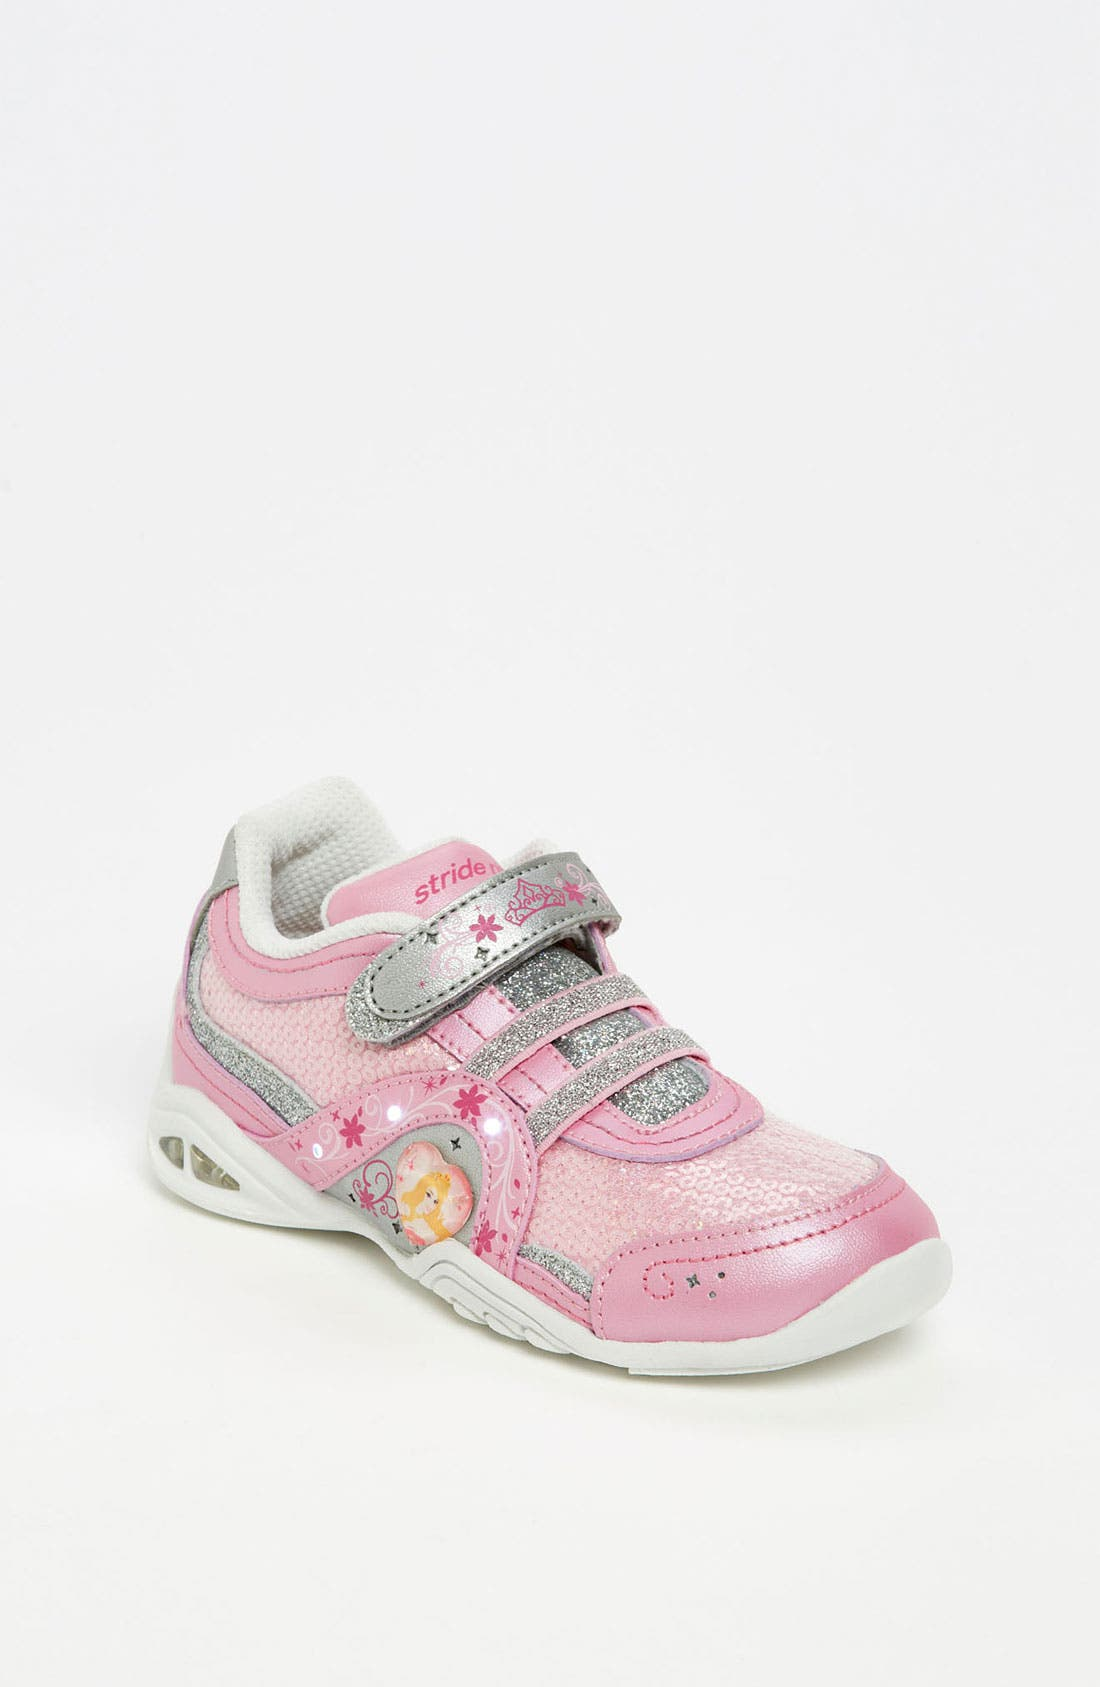 Alternate Image 1 Selected - Stride Rite 'Disney™ - Aurora' Sneaker (Toddler)